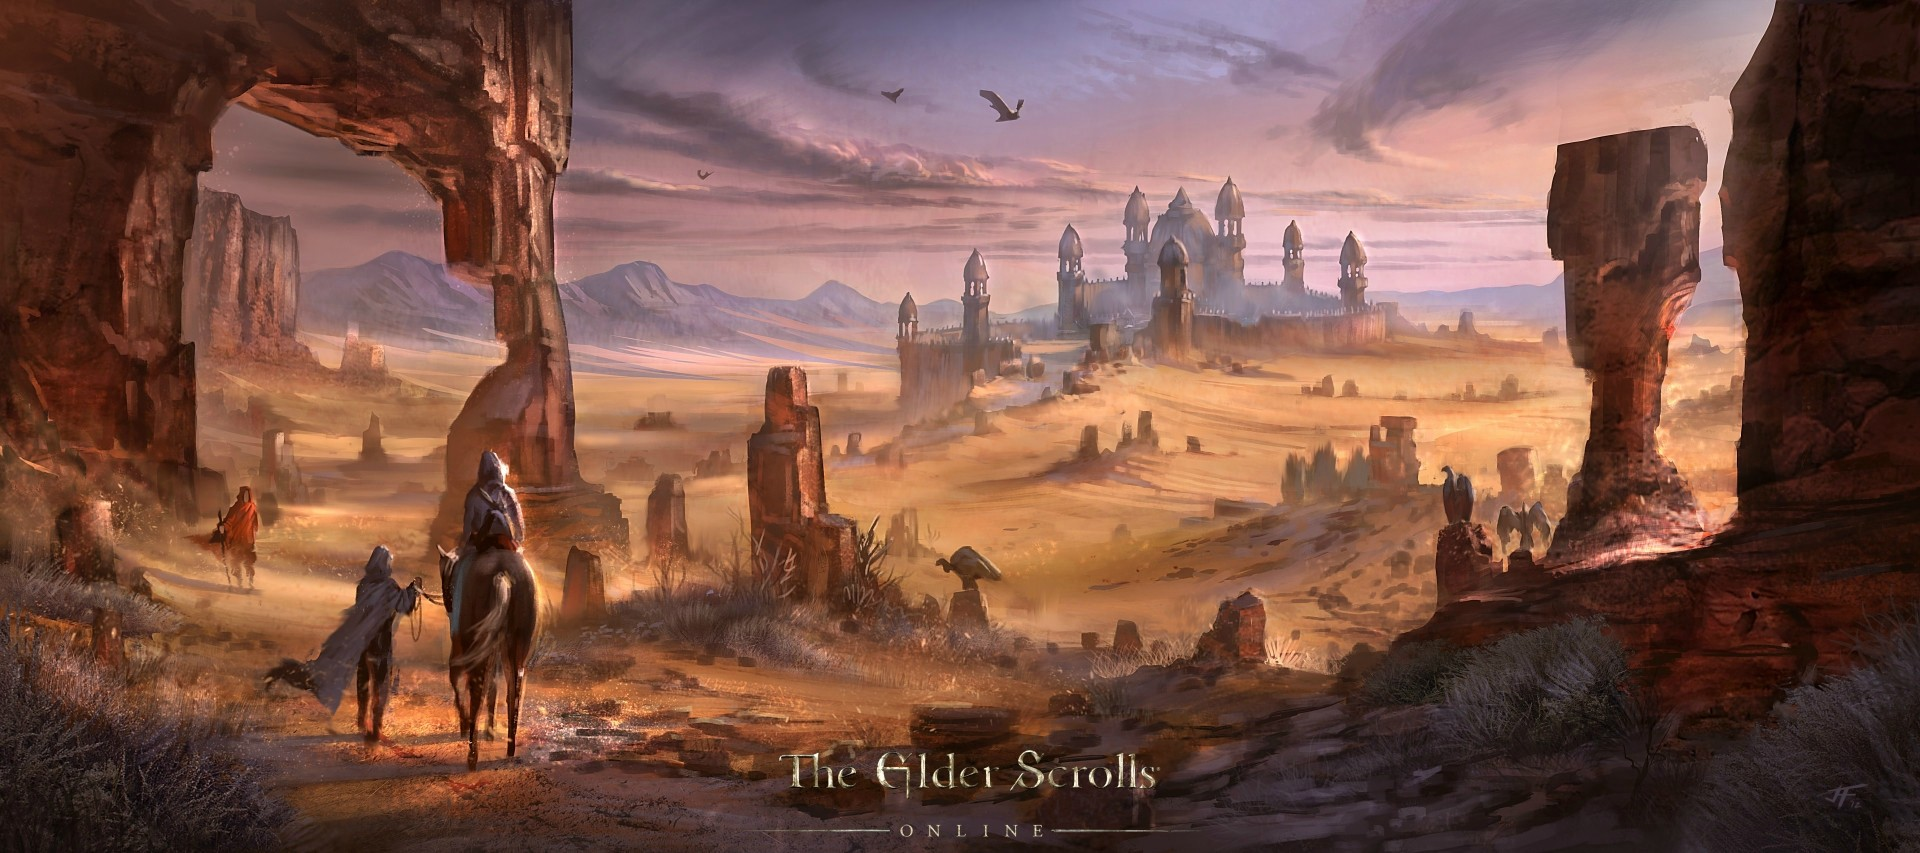 The Elder Scrolls: Online concept art locations